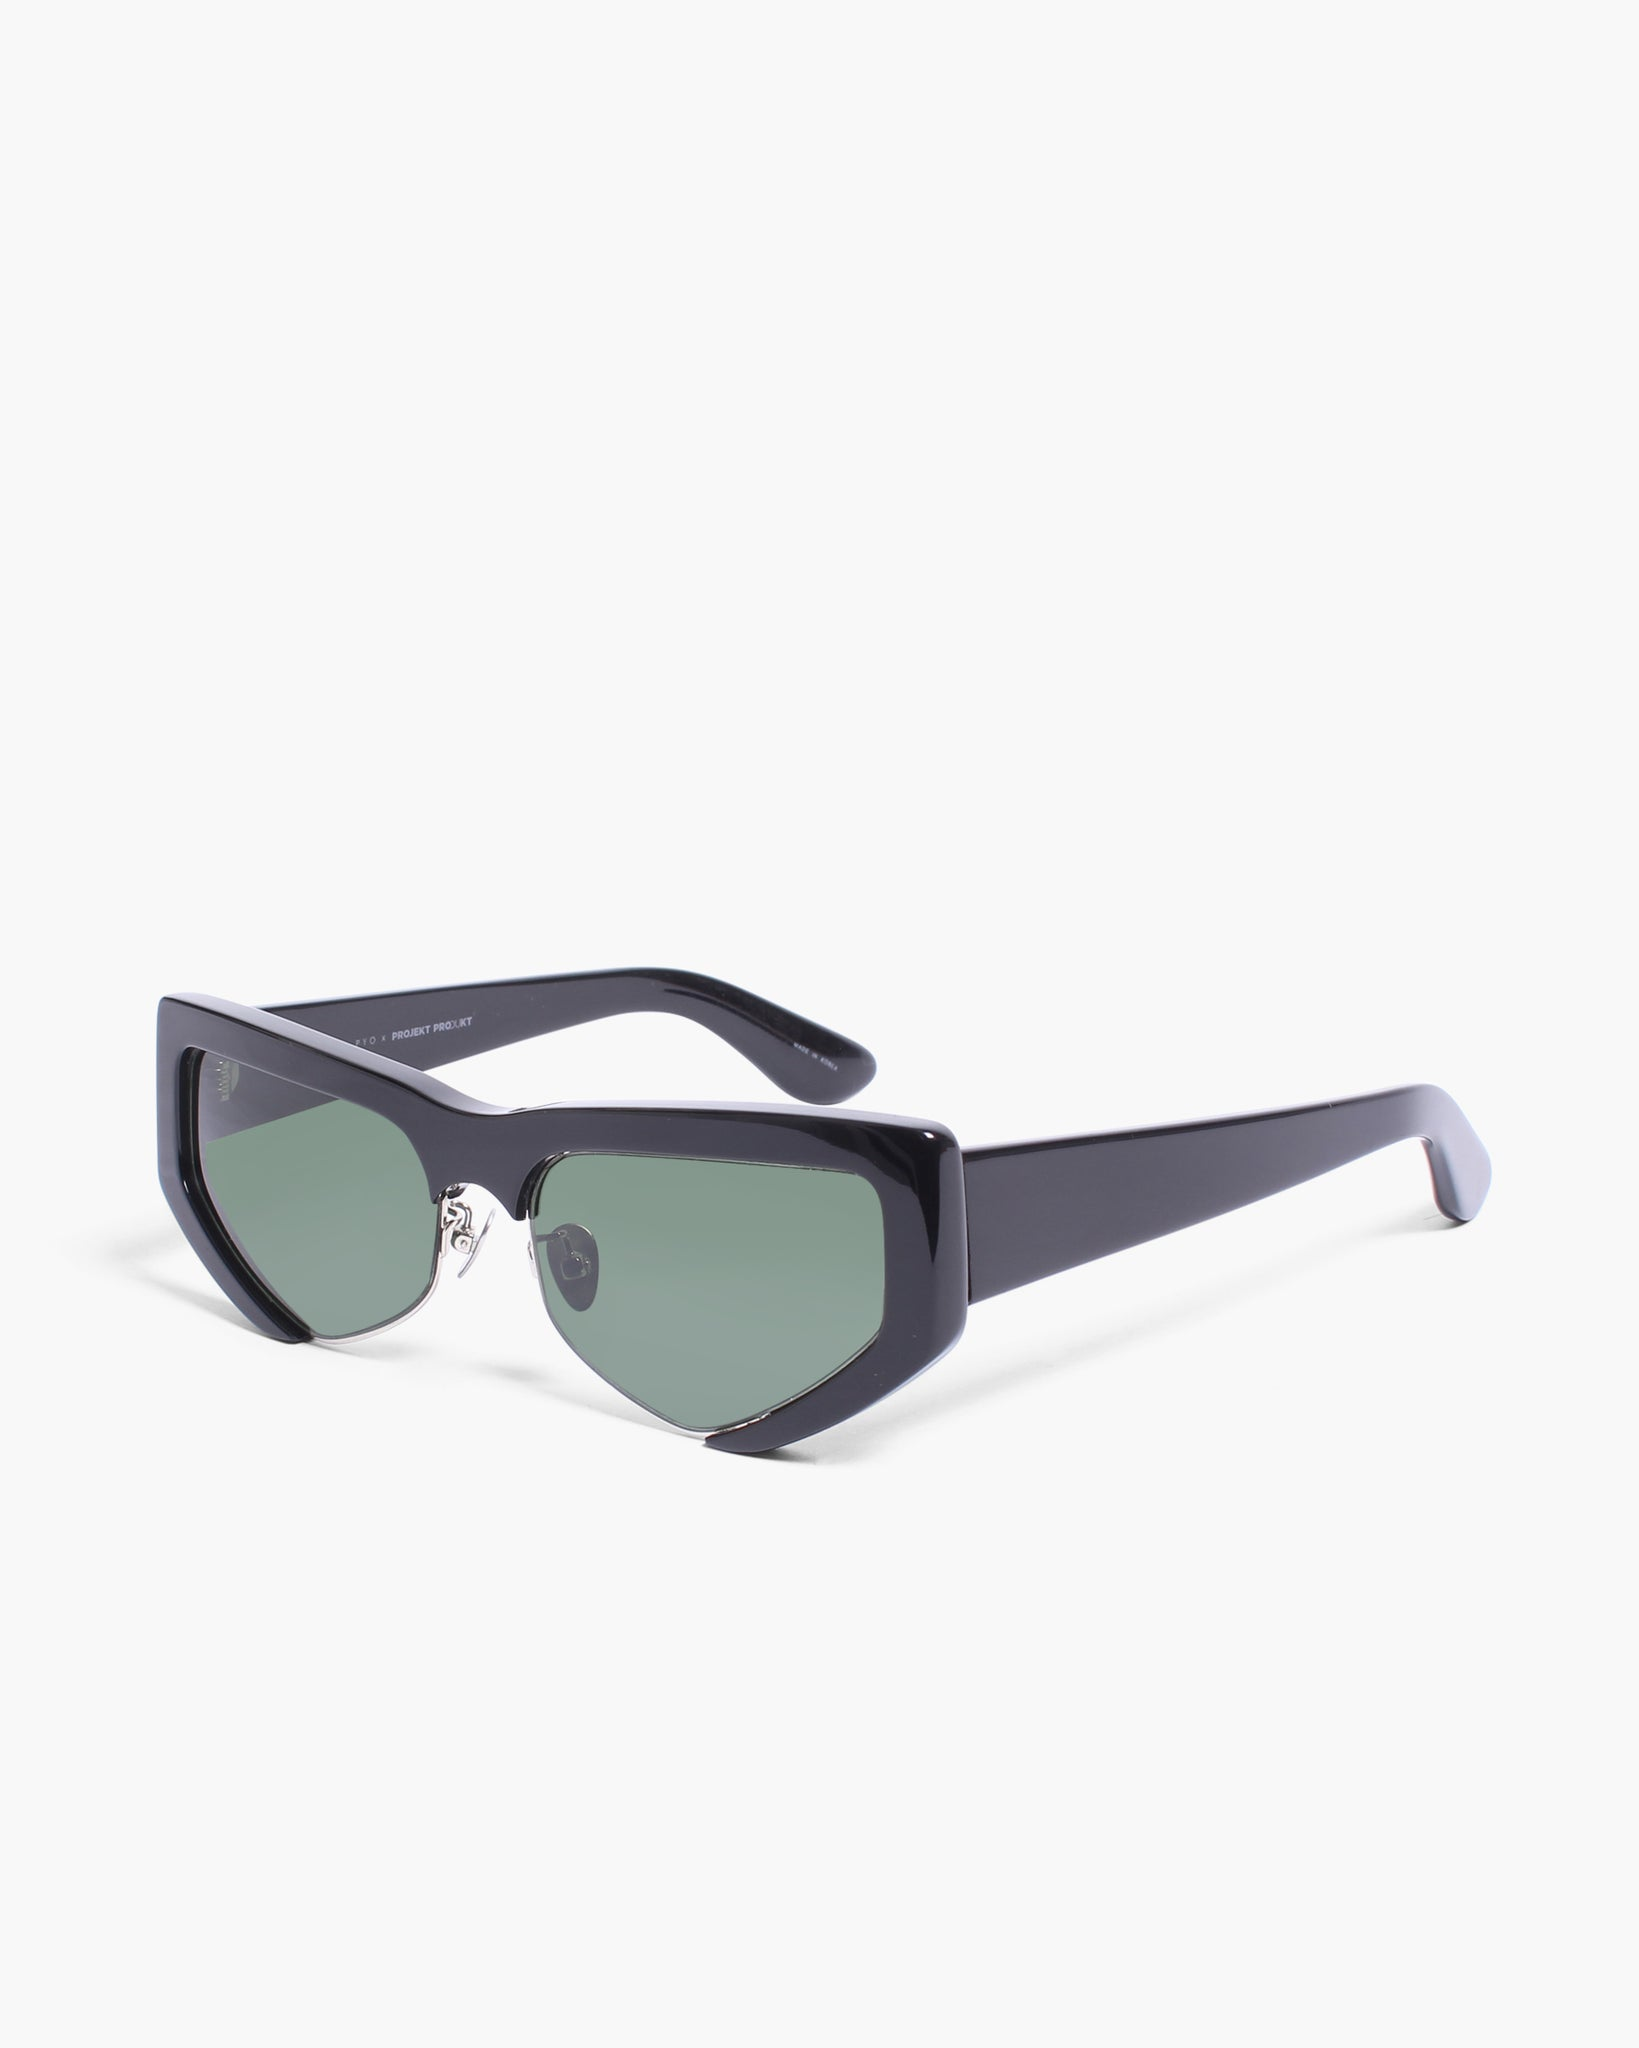 Tate Sunglasses Black